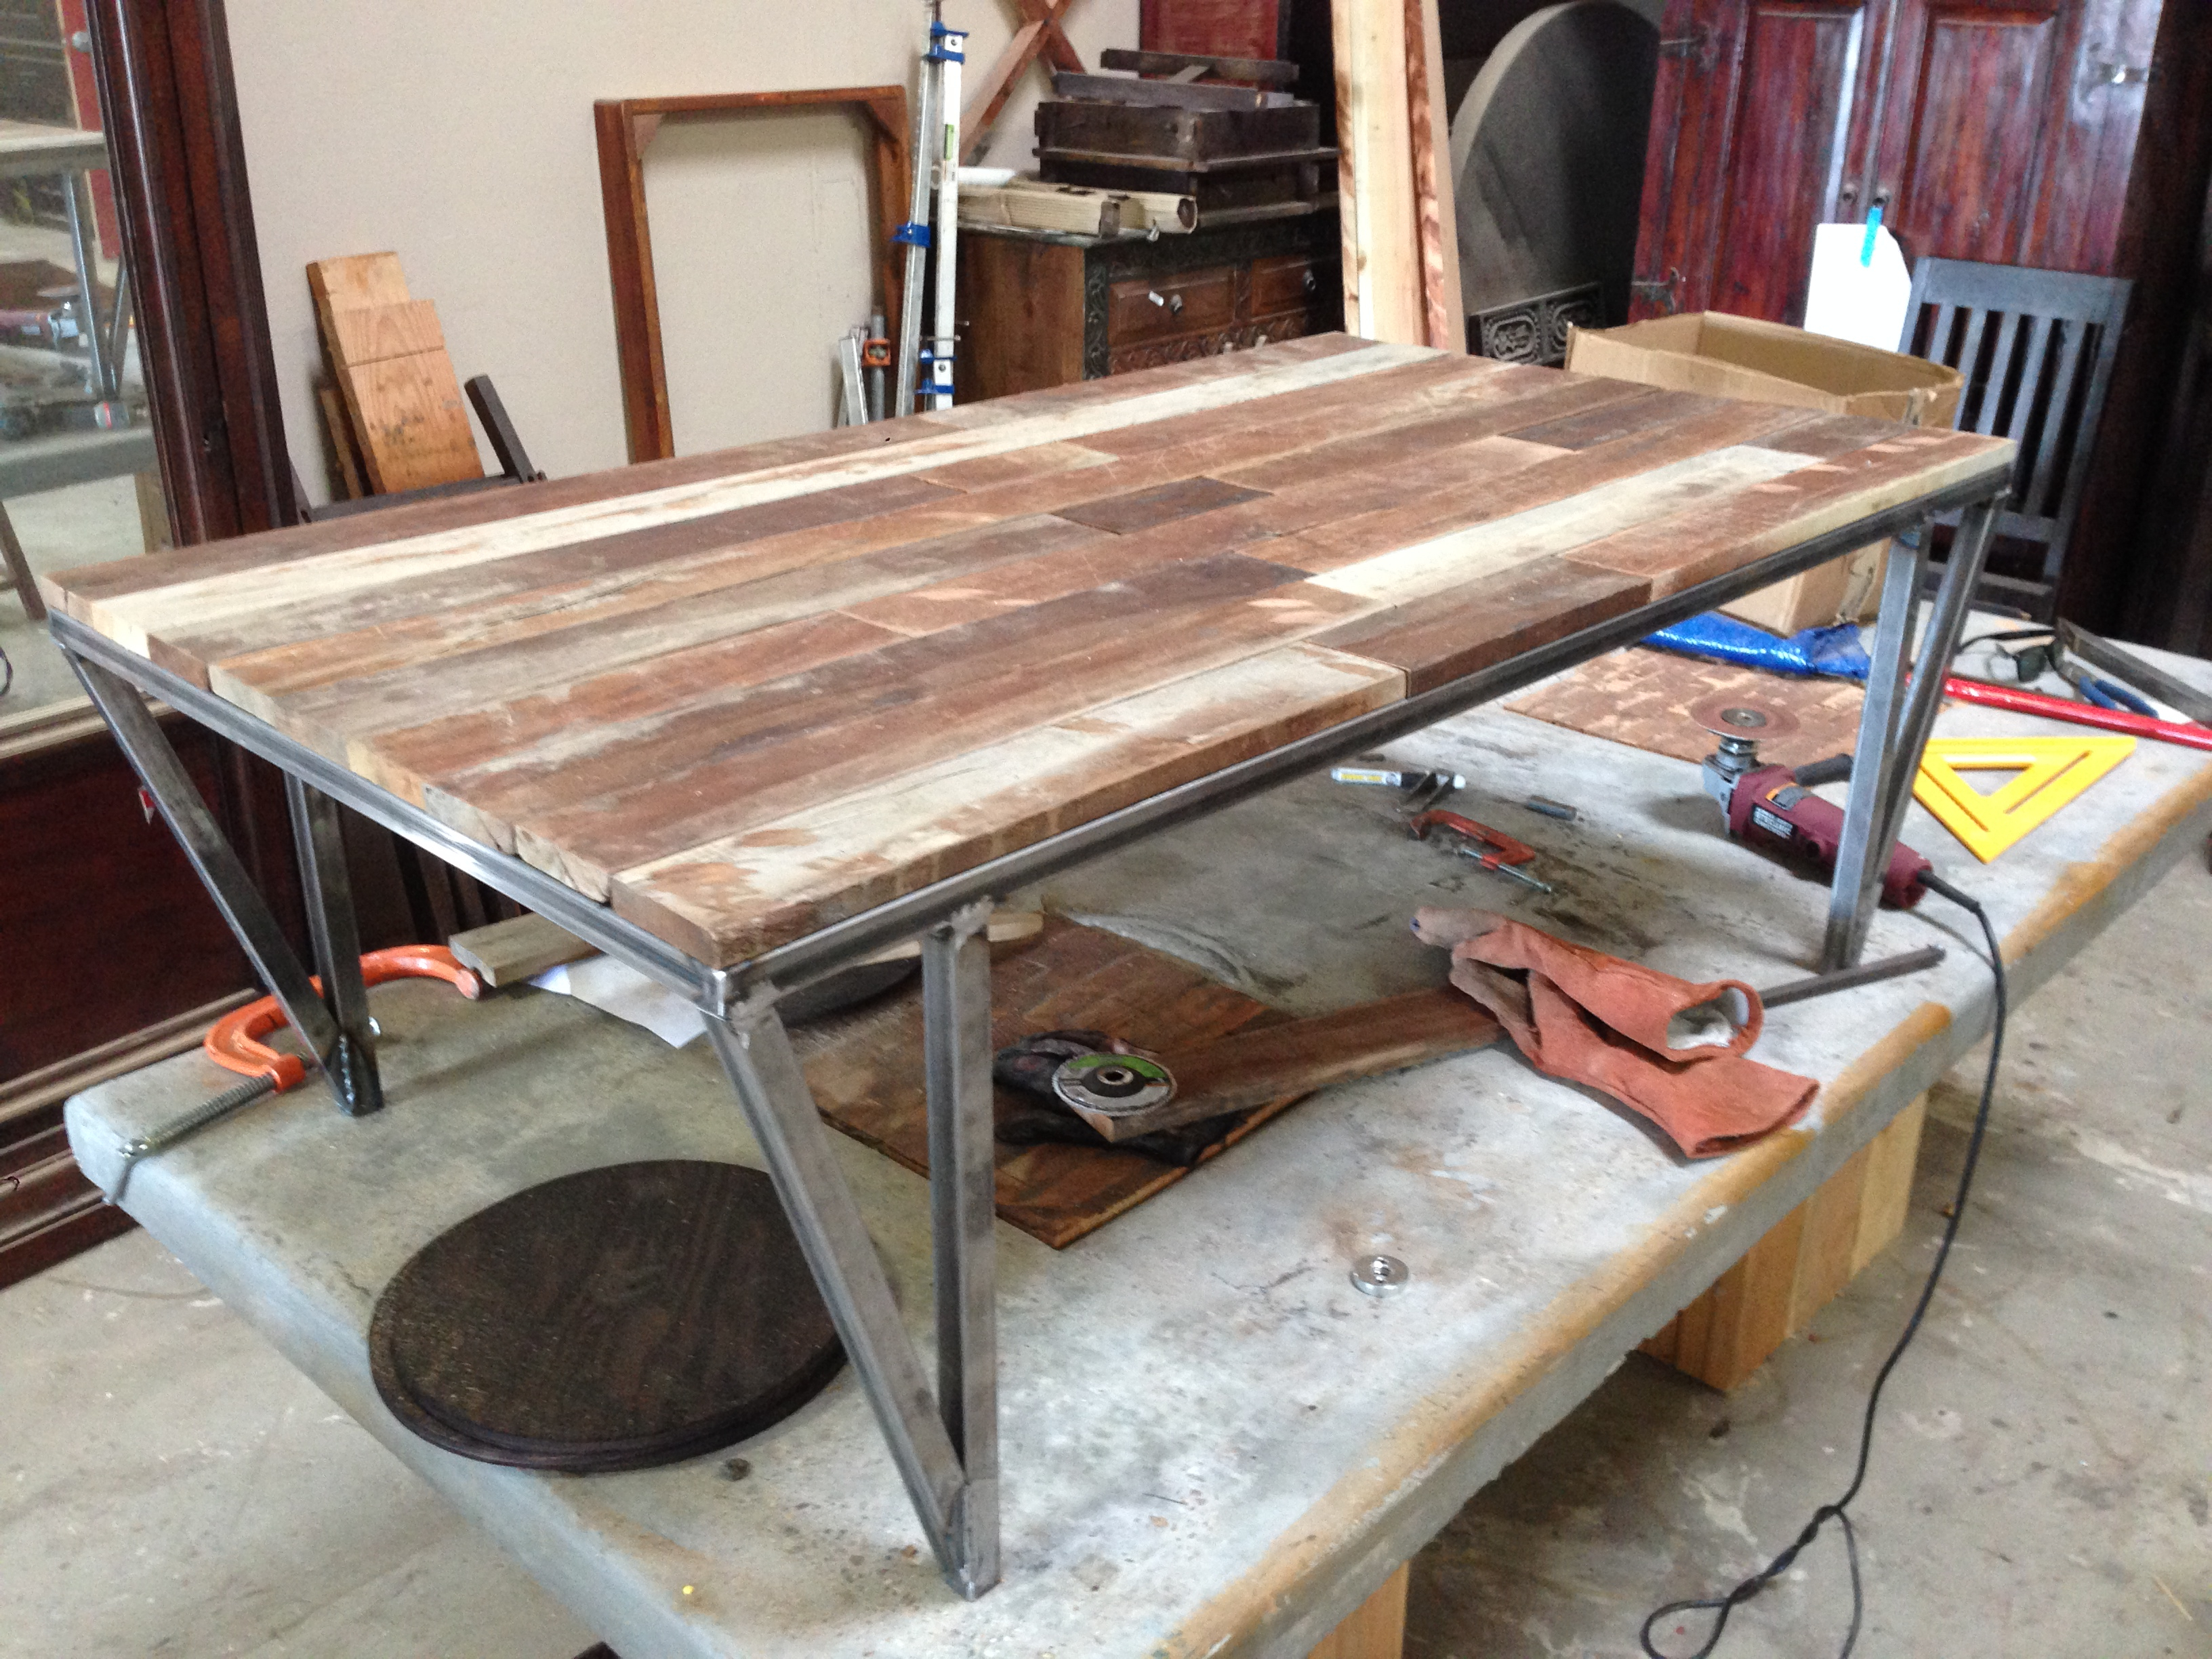 Custom Metal And Wood Furniture At San Diego Rustic Furniture – Made Inside Most Up To Date Iron Wood Coffee Tables With Wheels (View 11 of 20)